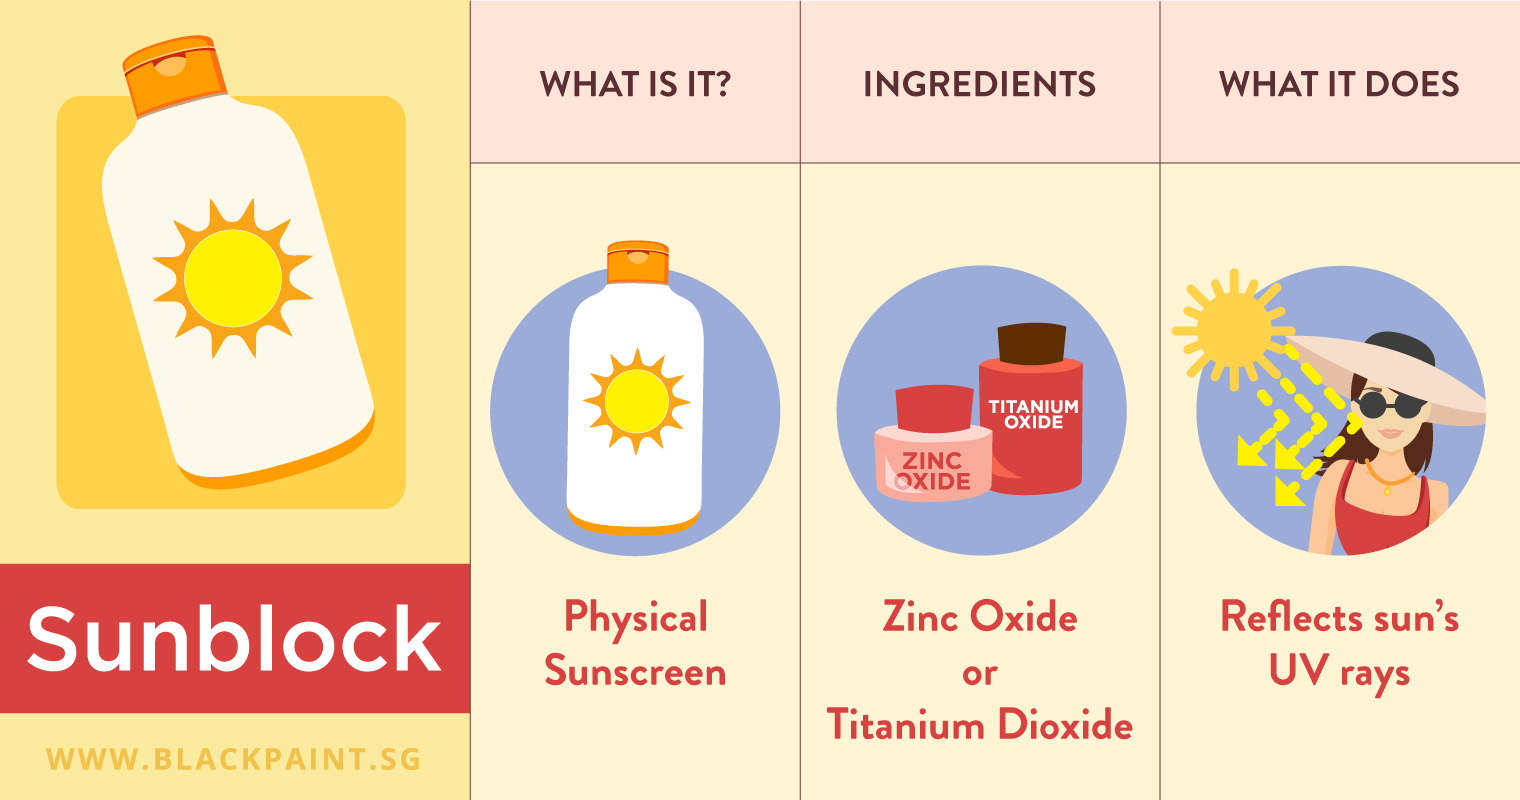 illustration of sunblock is a physical sunscreen that contains zinc oxide or titanium dioxide as ingredients to reflect UV rays